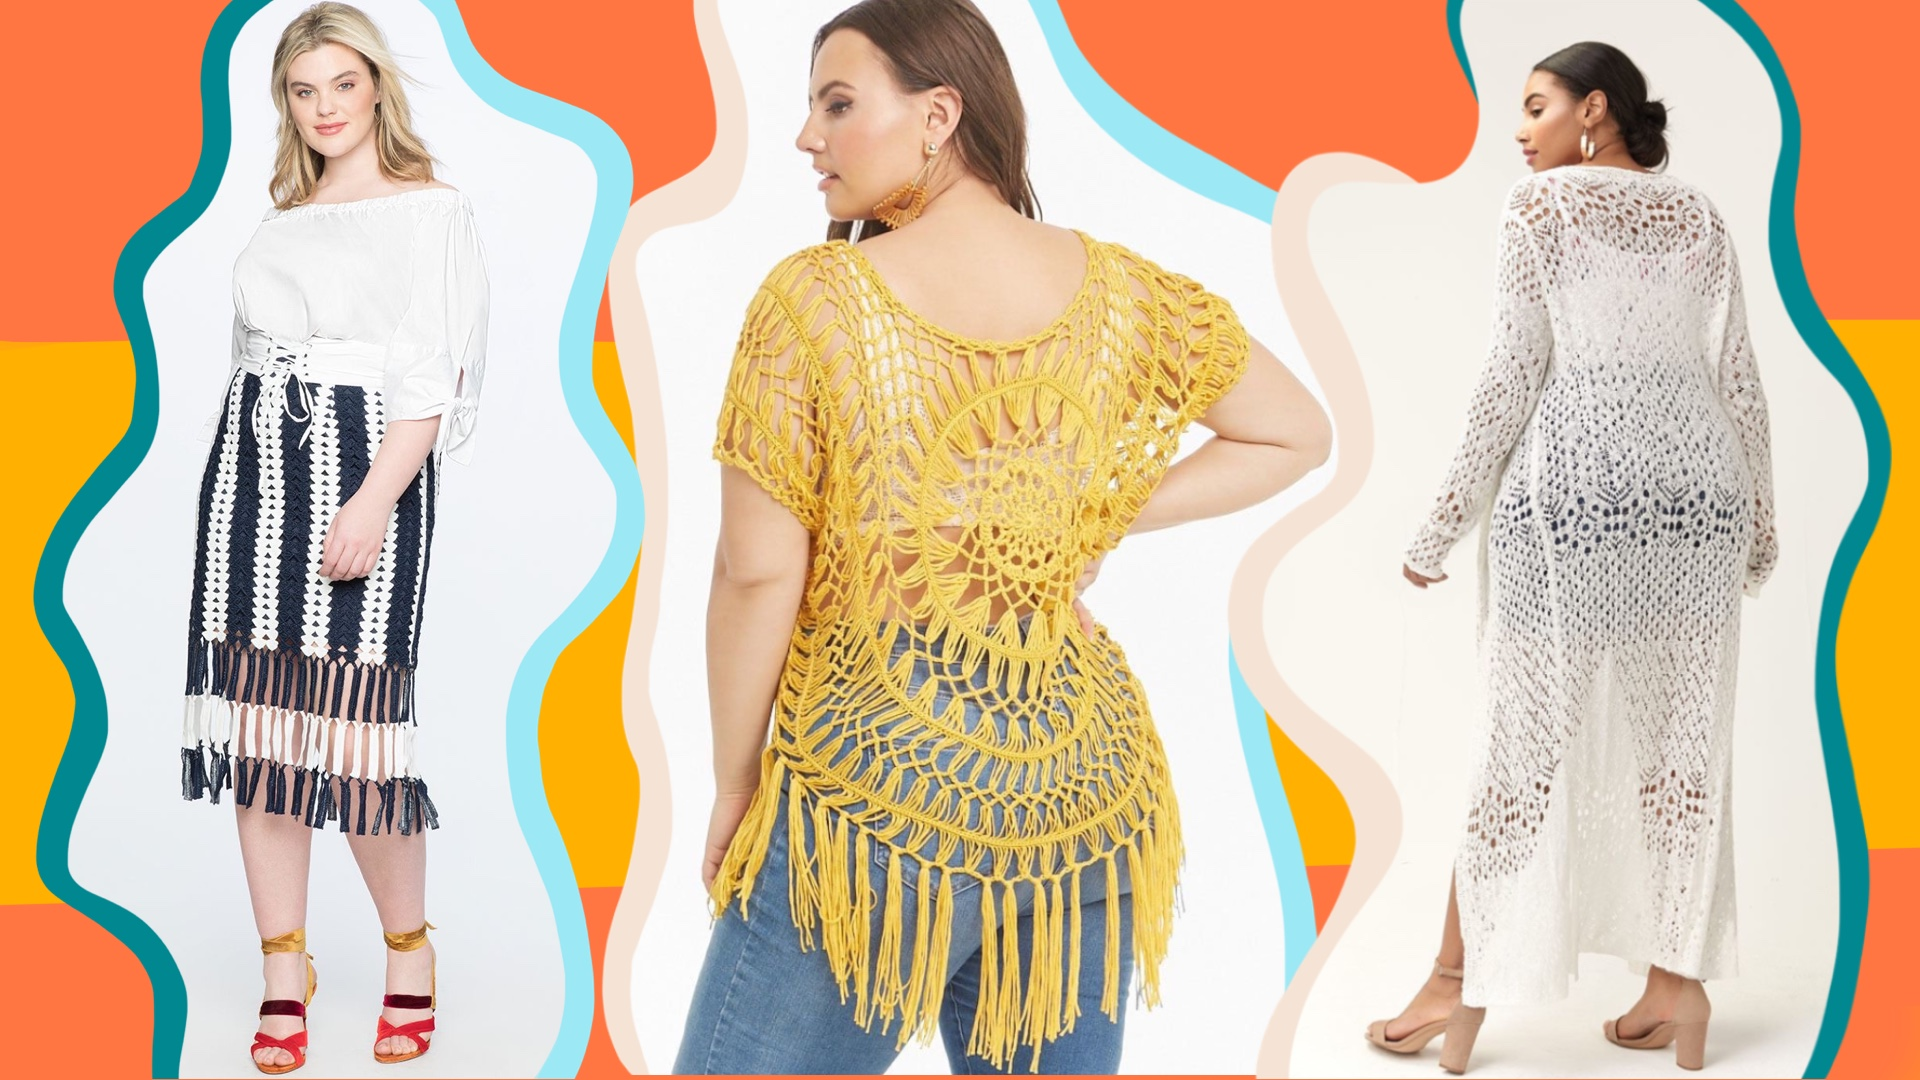 UNRULY | Spring 2019's Crochet Trend